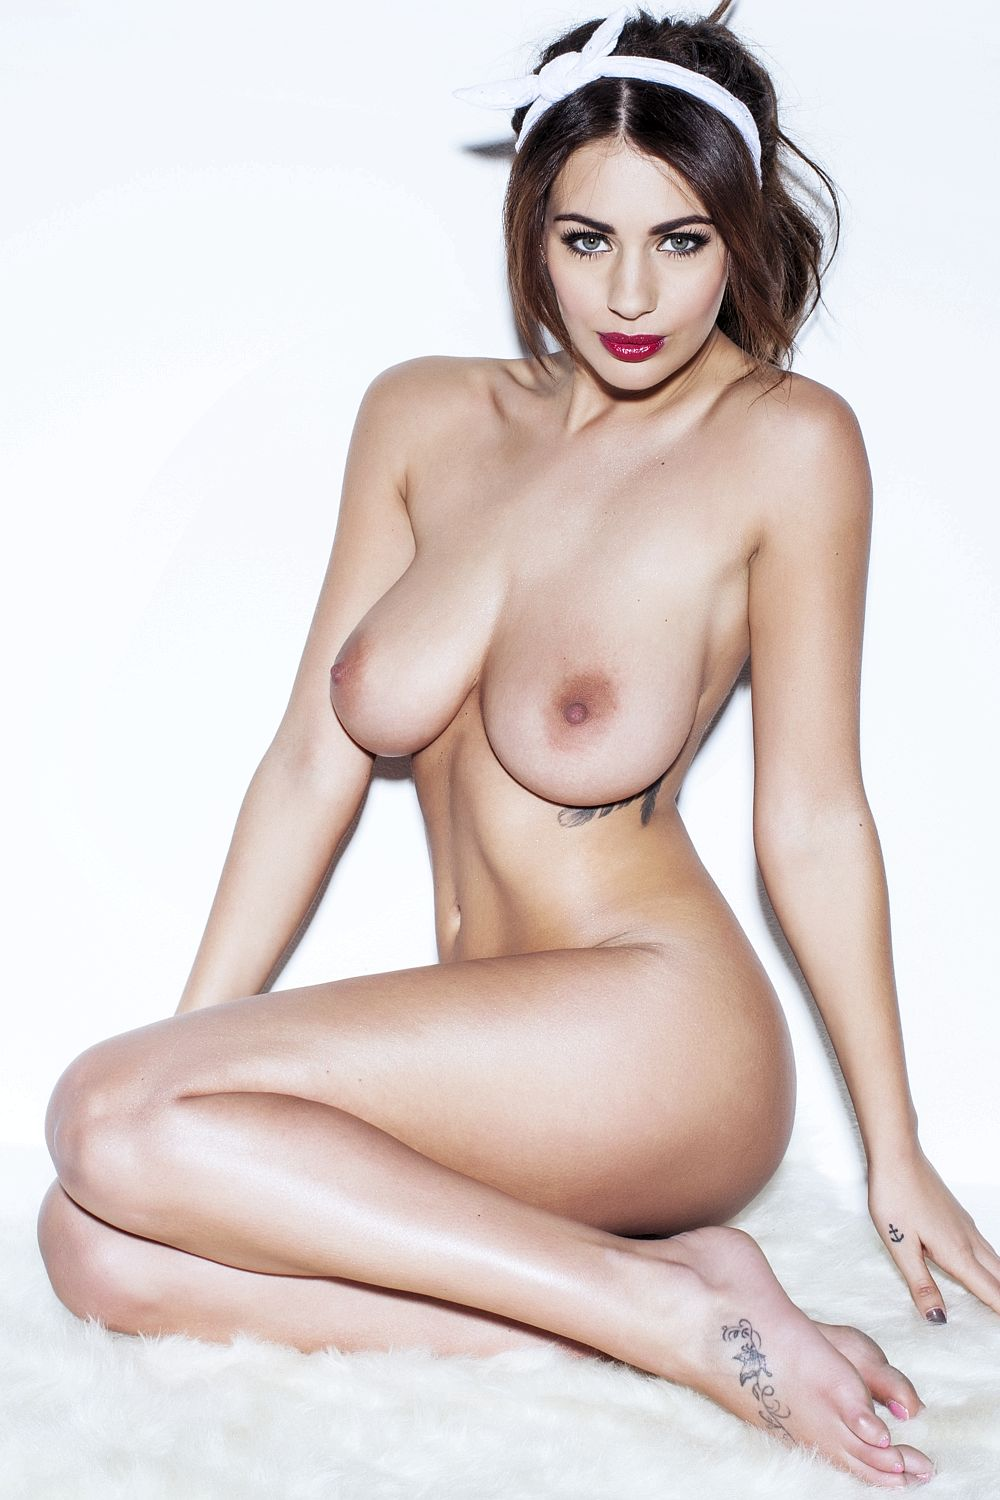 Nude Pics Of Holly Peers